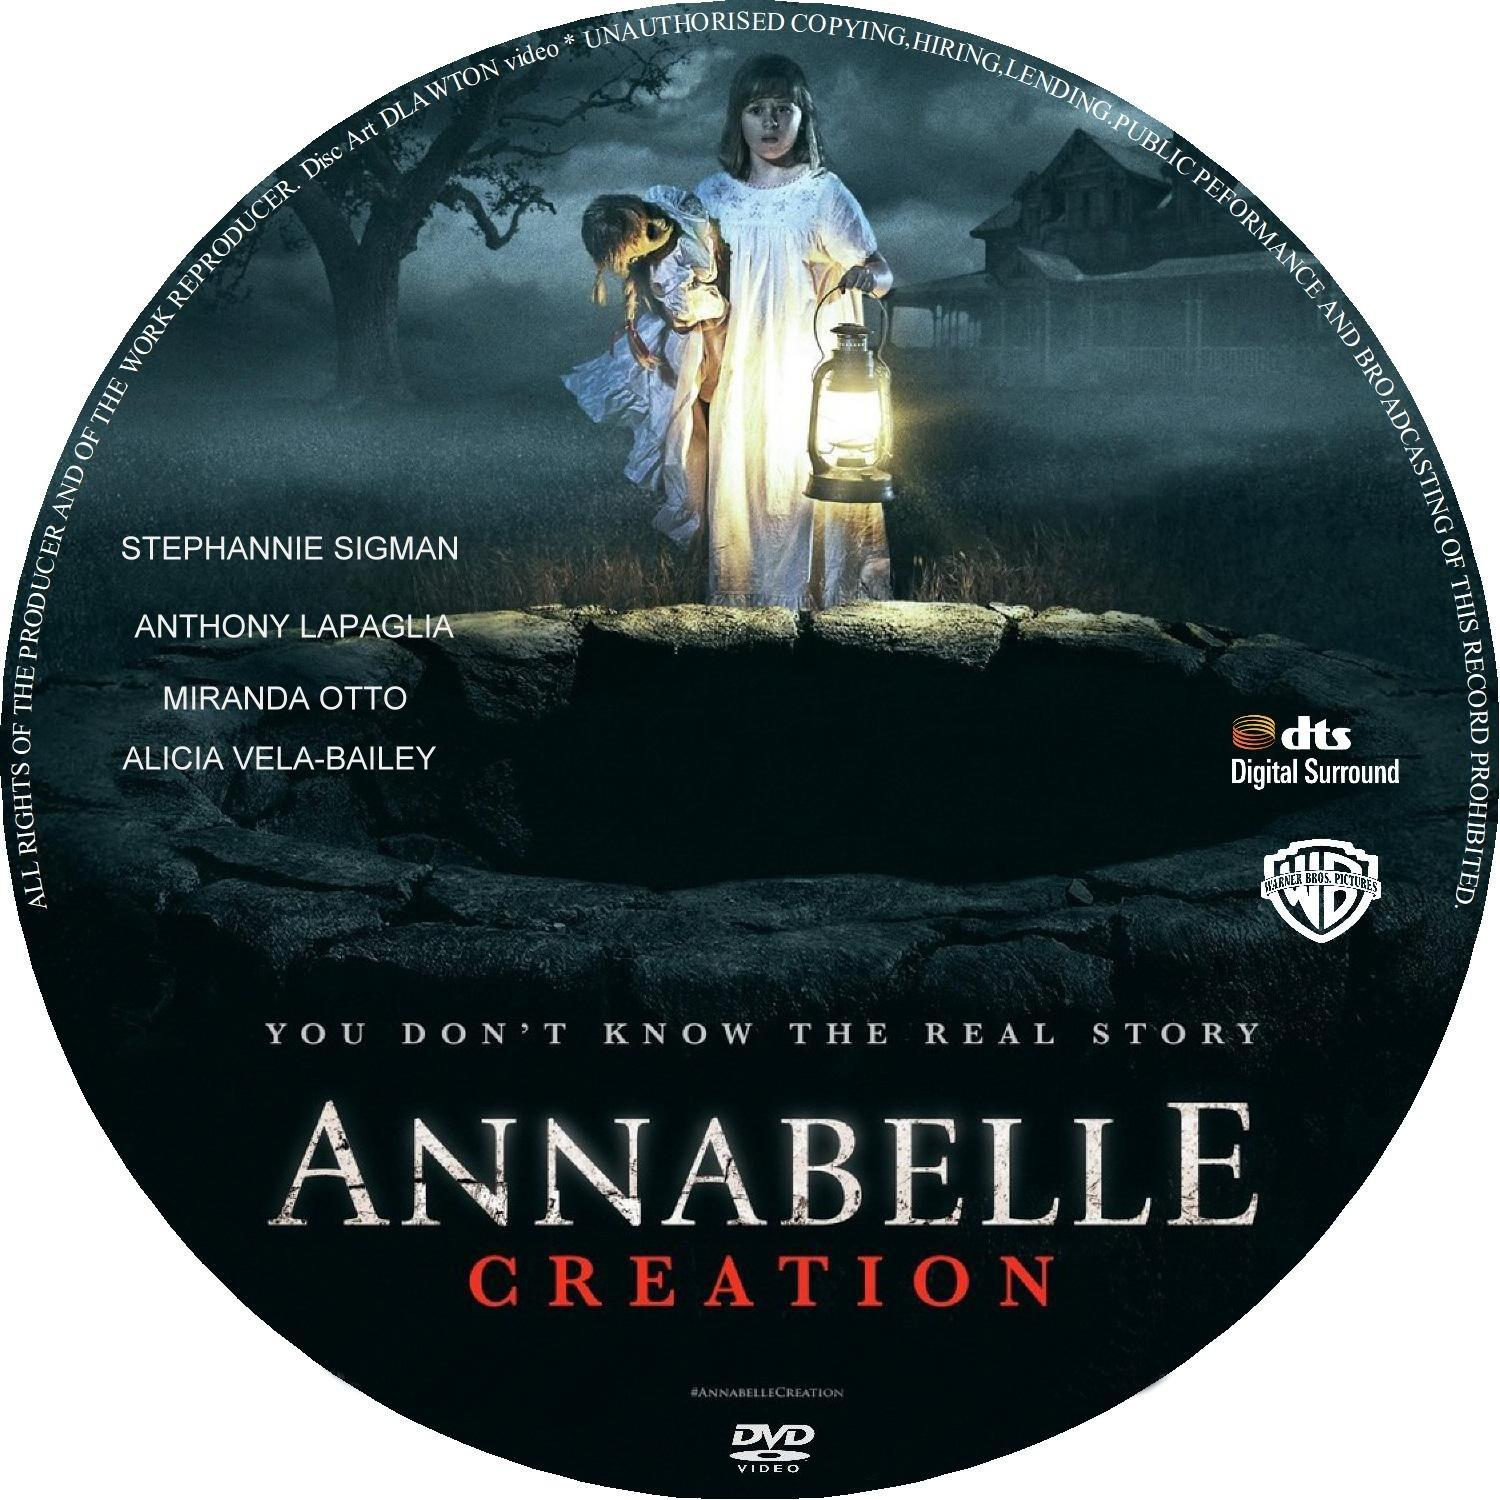 Annabelle Creation 2017 Cd Dvd Covers Cover Century Over 500 000 Album Art Covers For Free